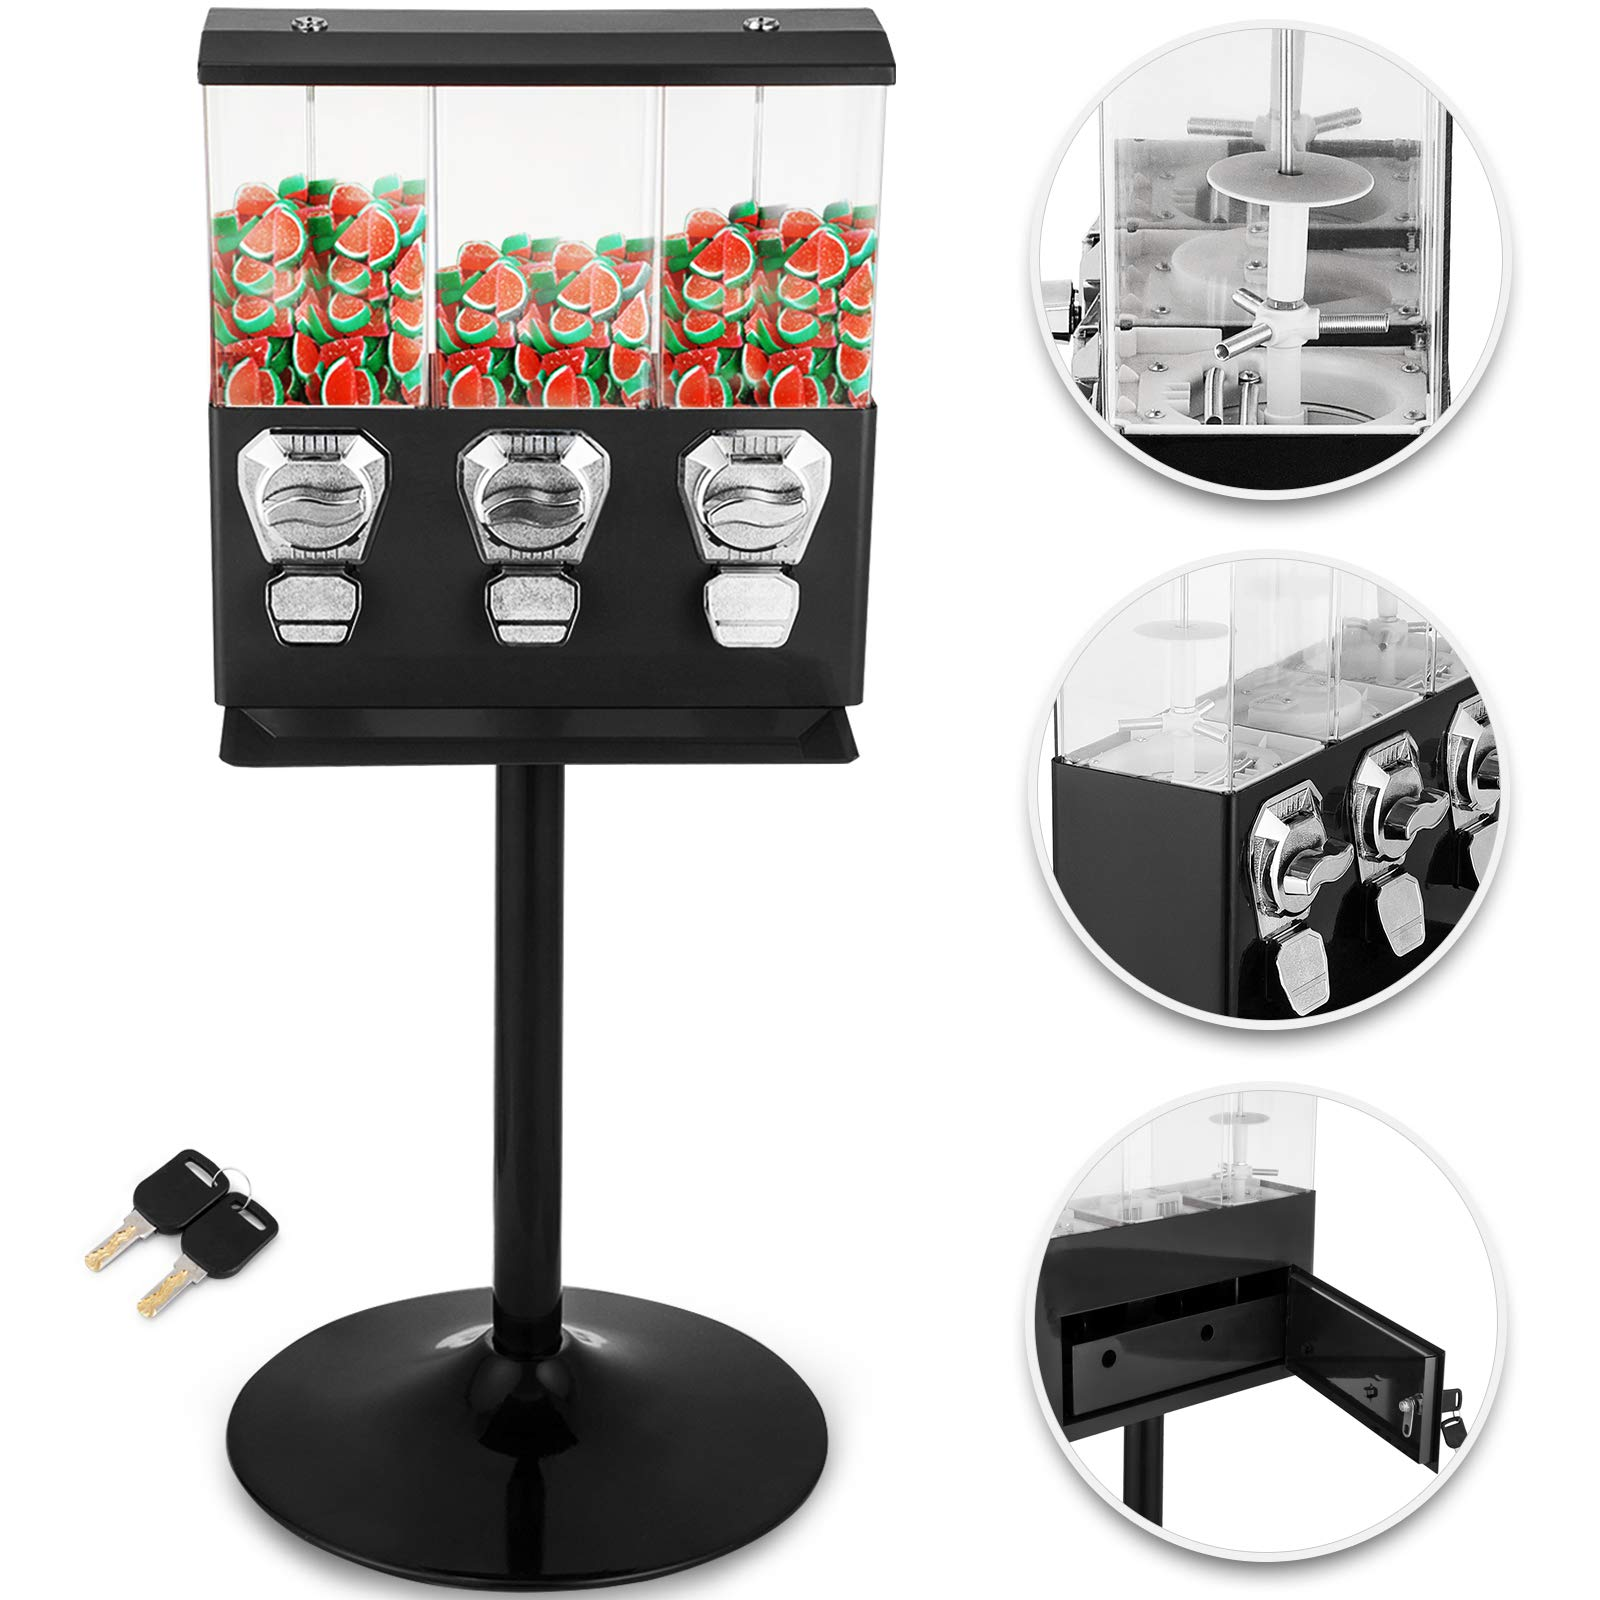 Mophorn Triple Pod Candy Gumball Vending Machine Black Triple Head Candy Vending Dispenser with Stand Heavy Duty Gumball Bank Durable Metal Body Removable Canisters